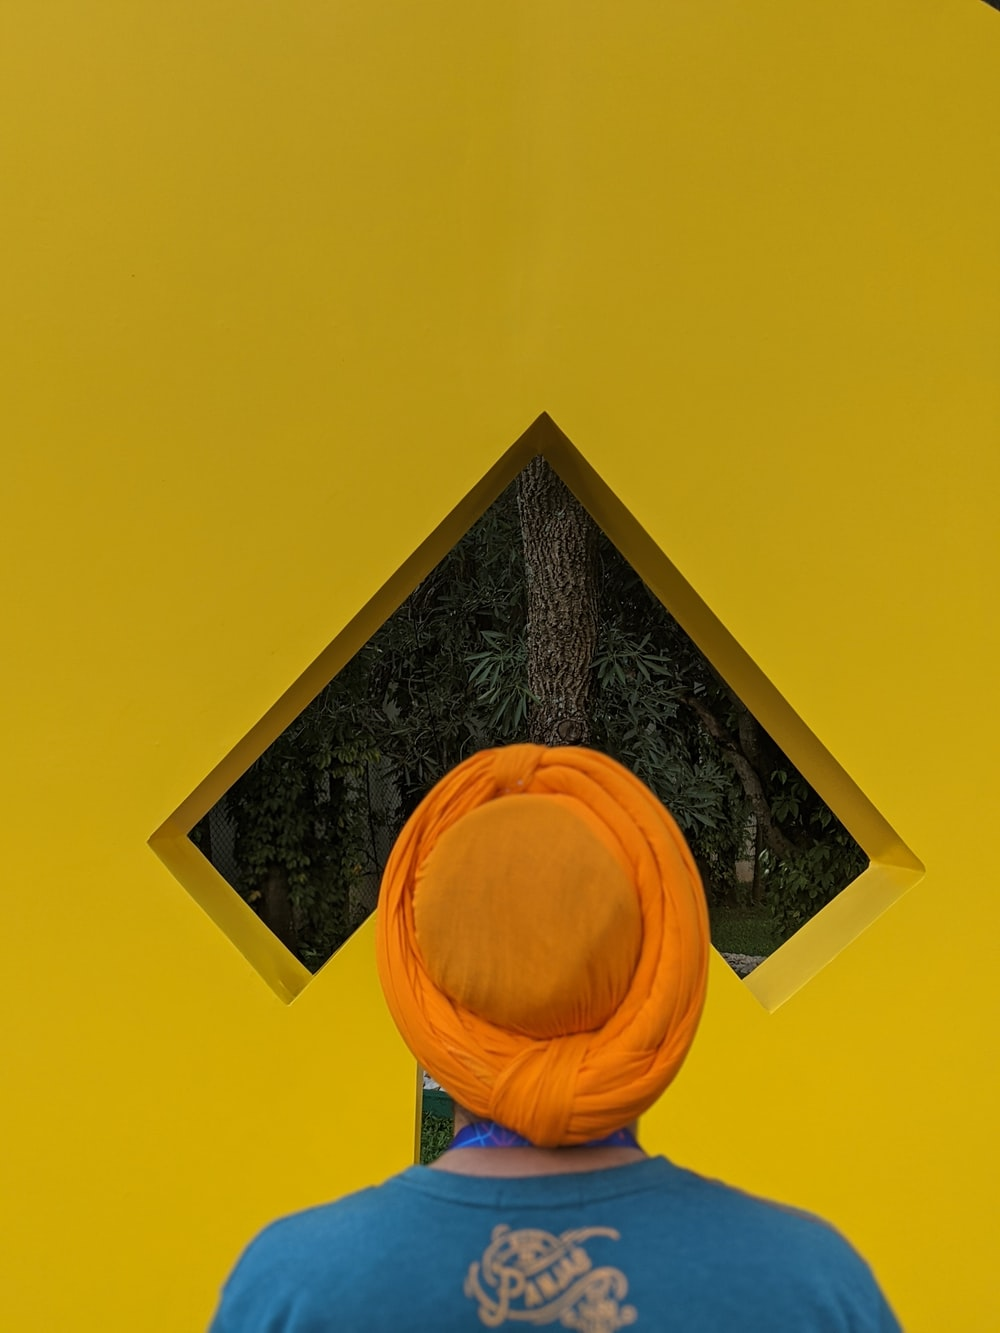 person wearing blue and brown shirt and orange turban hat standing while facing back